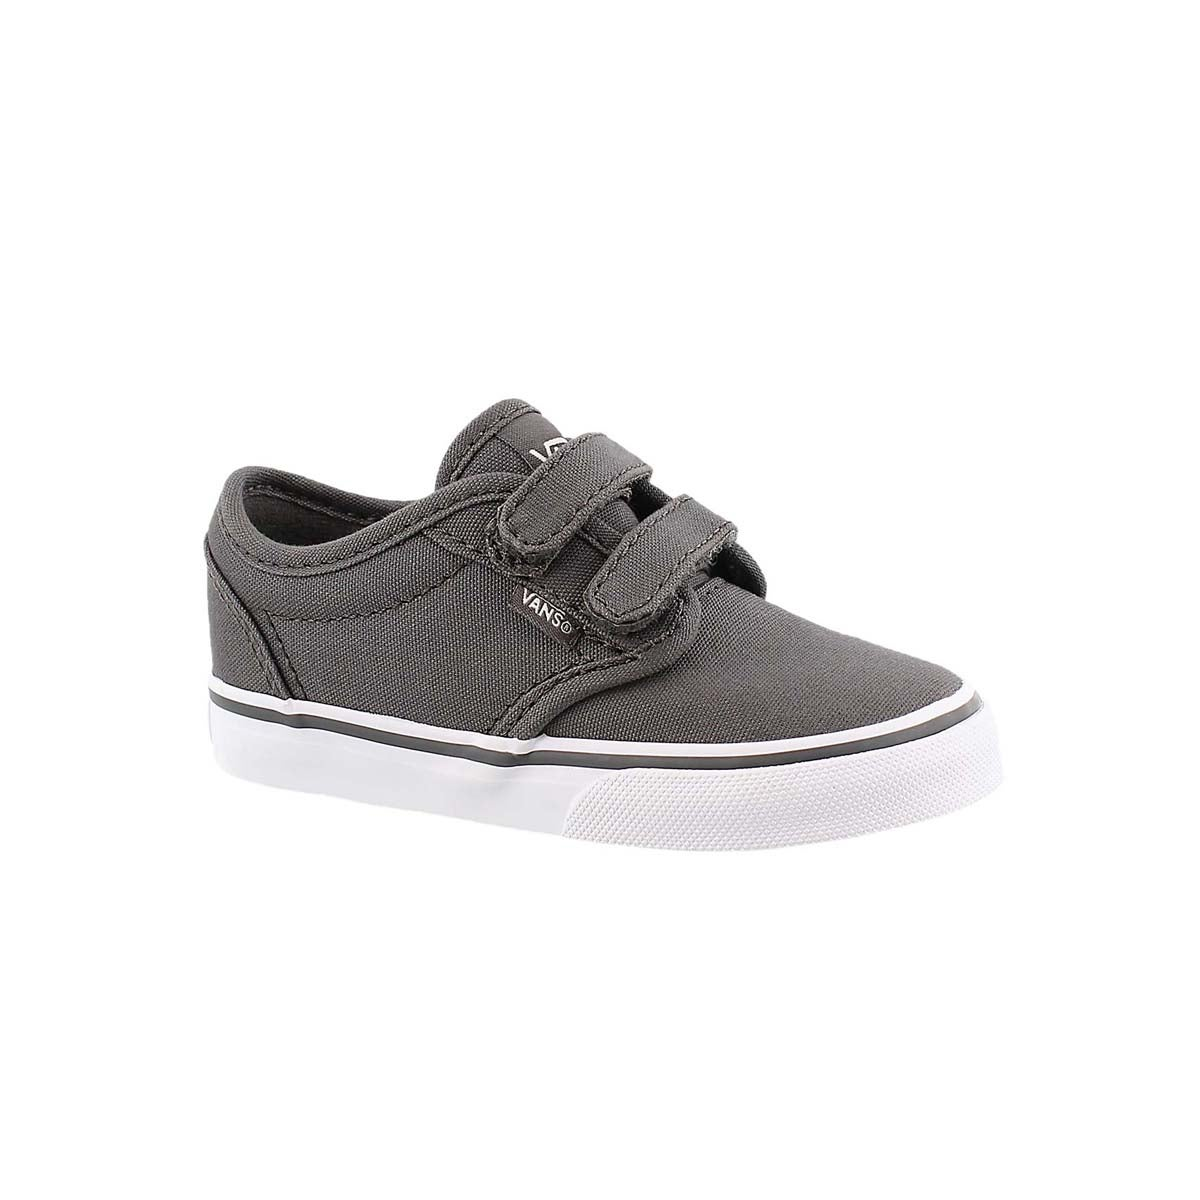 Infs-b Atwood pewter canvas sneaker